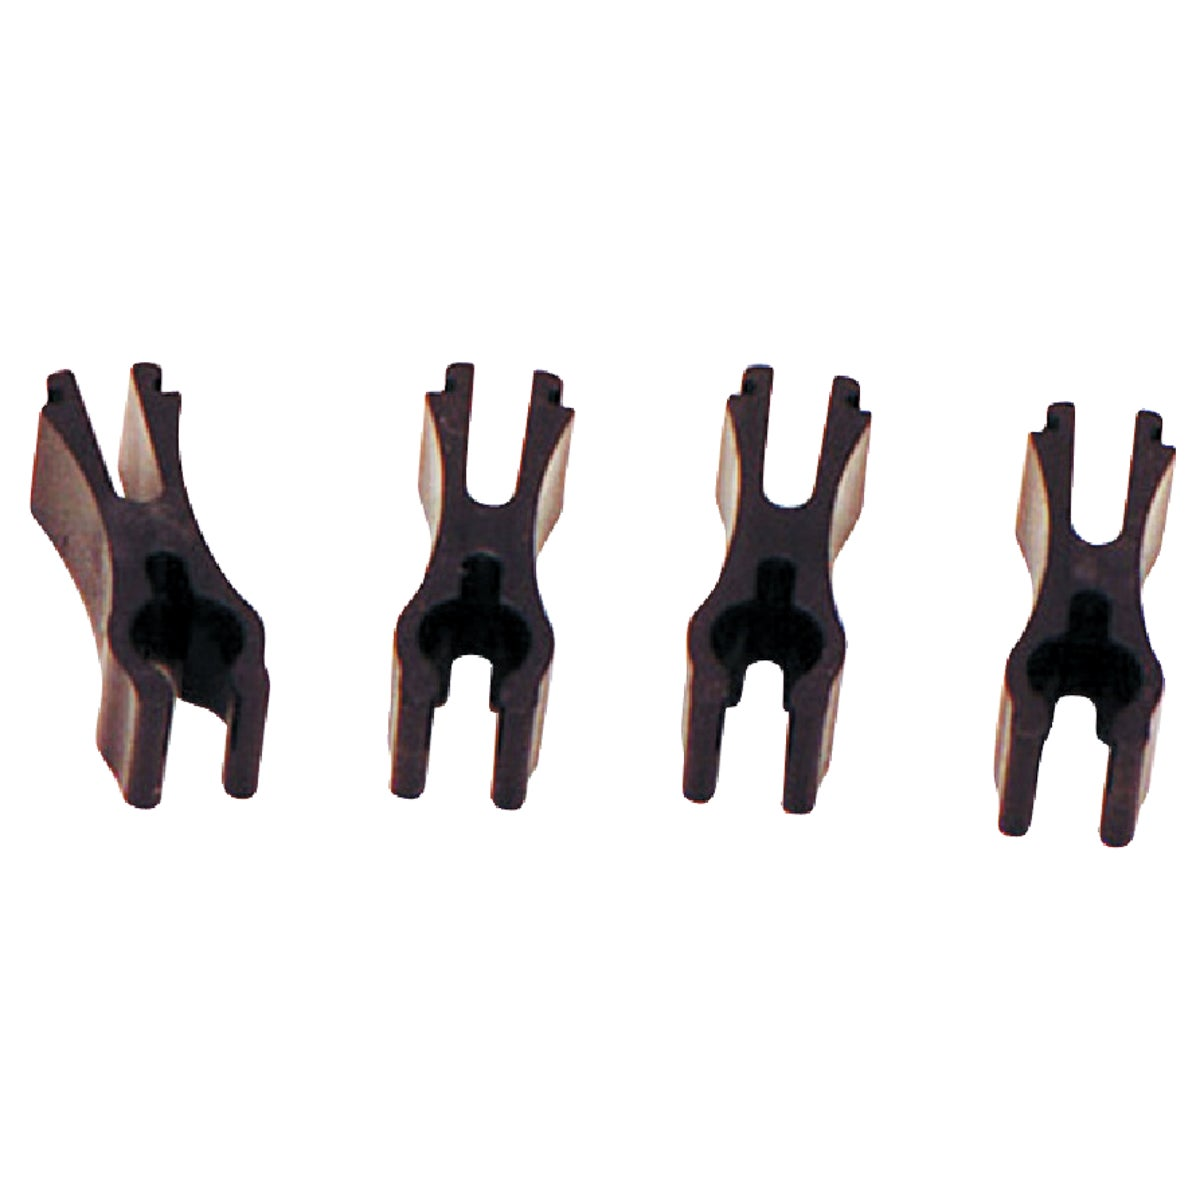 TUBE CLIP 4-PACK - 4632 by Dial Manufacturing